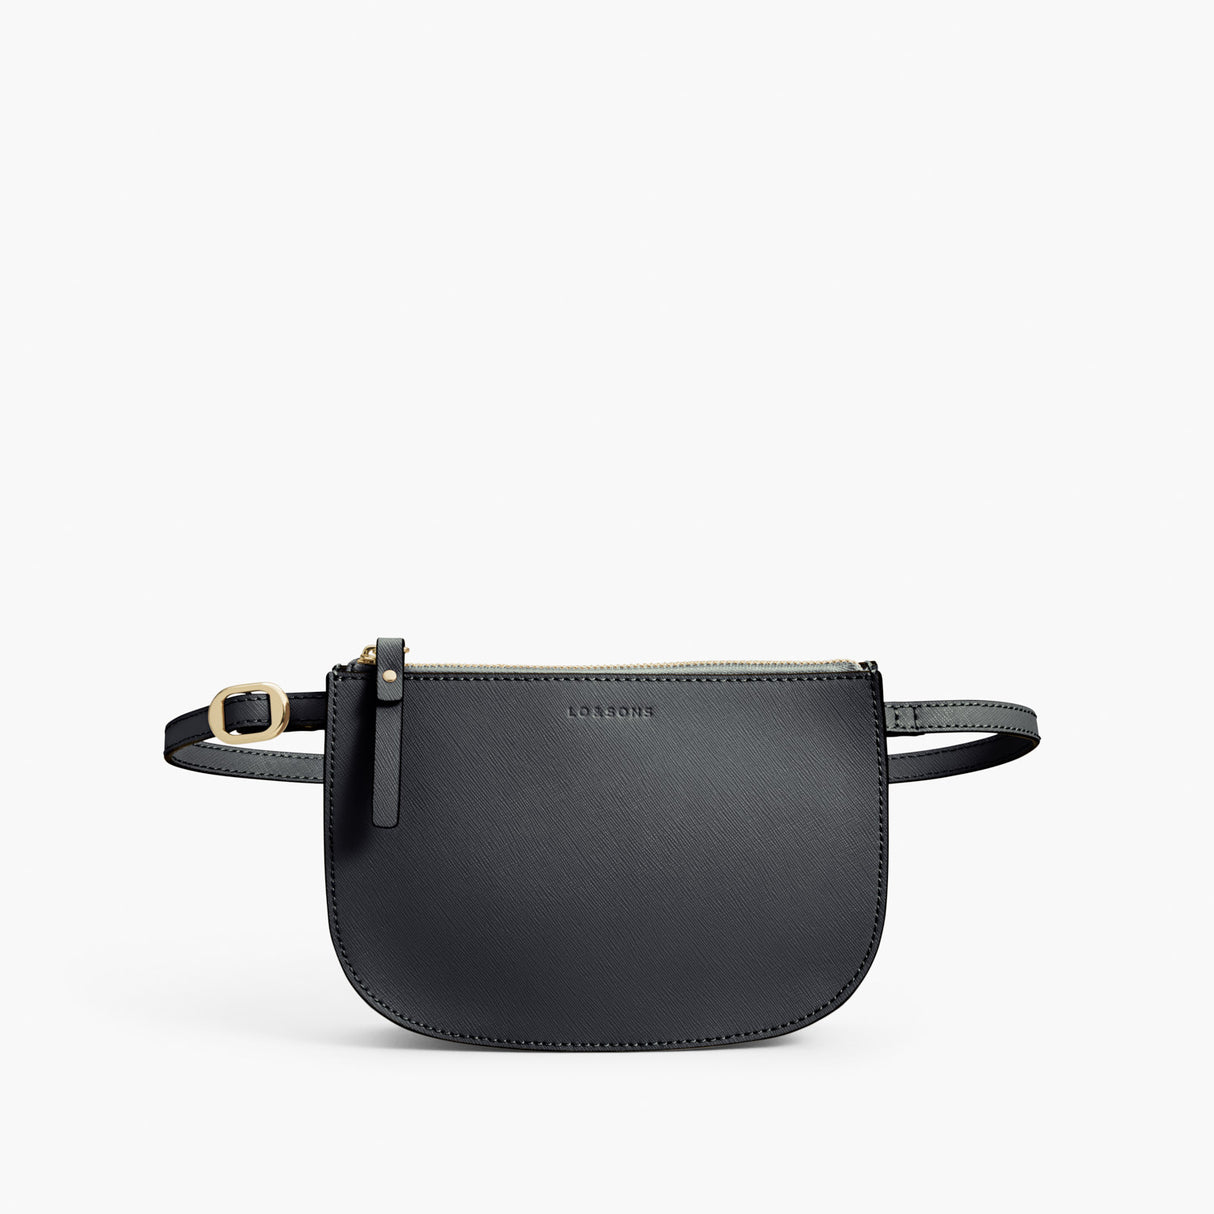 Front Belt - Waverley 2 - Saffiano Leather - Dark Grey / Gold / Grey - Crossbody Bag - Lo & Sons